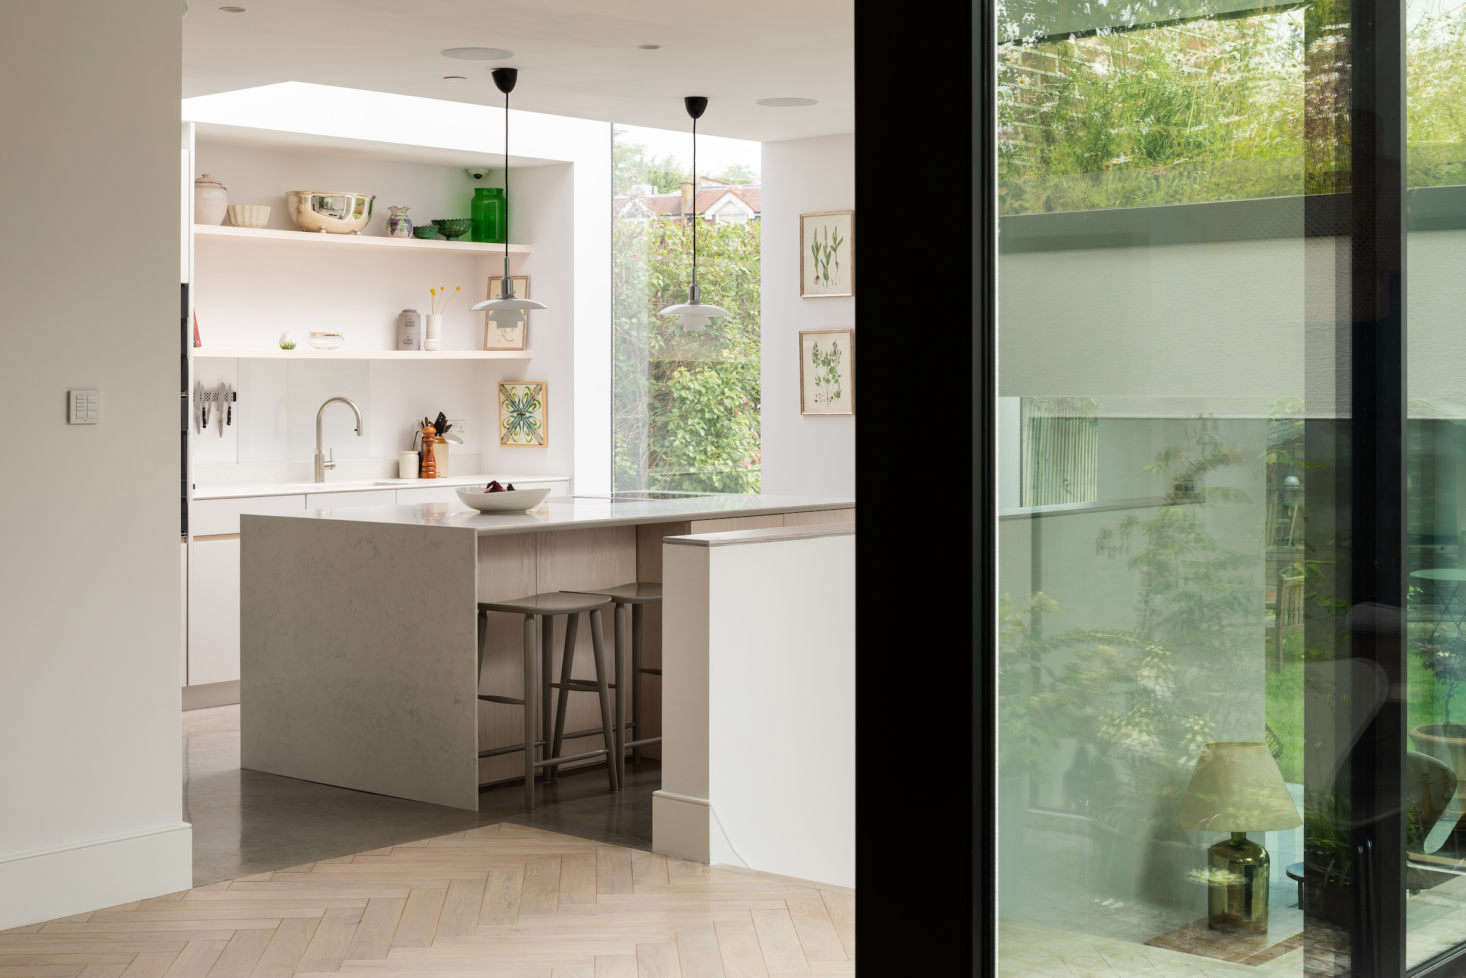 Every window in the extension welcomes the outdoors in.